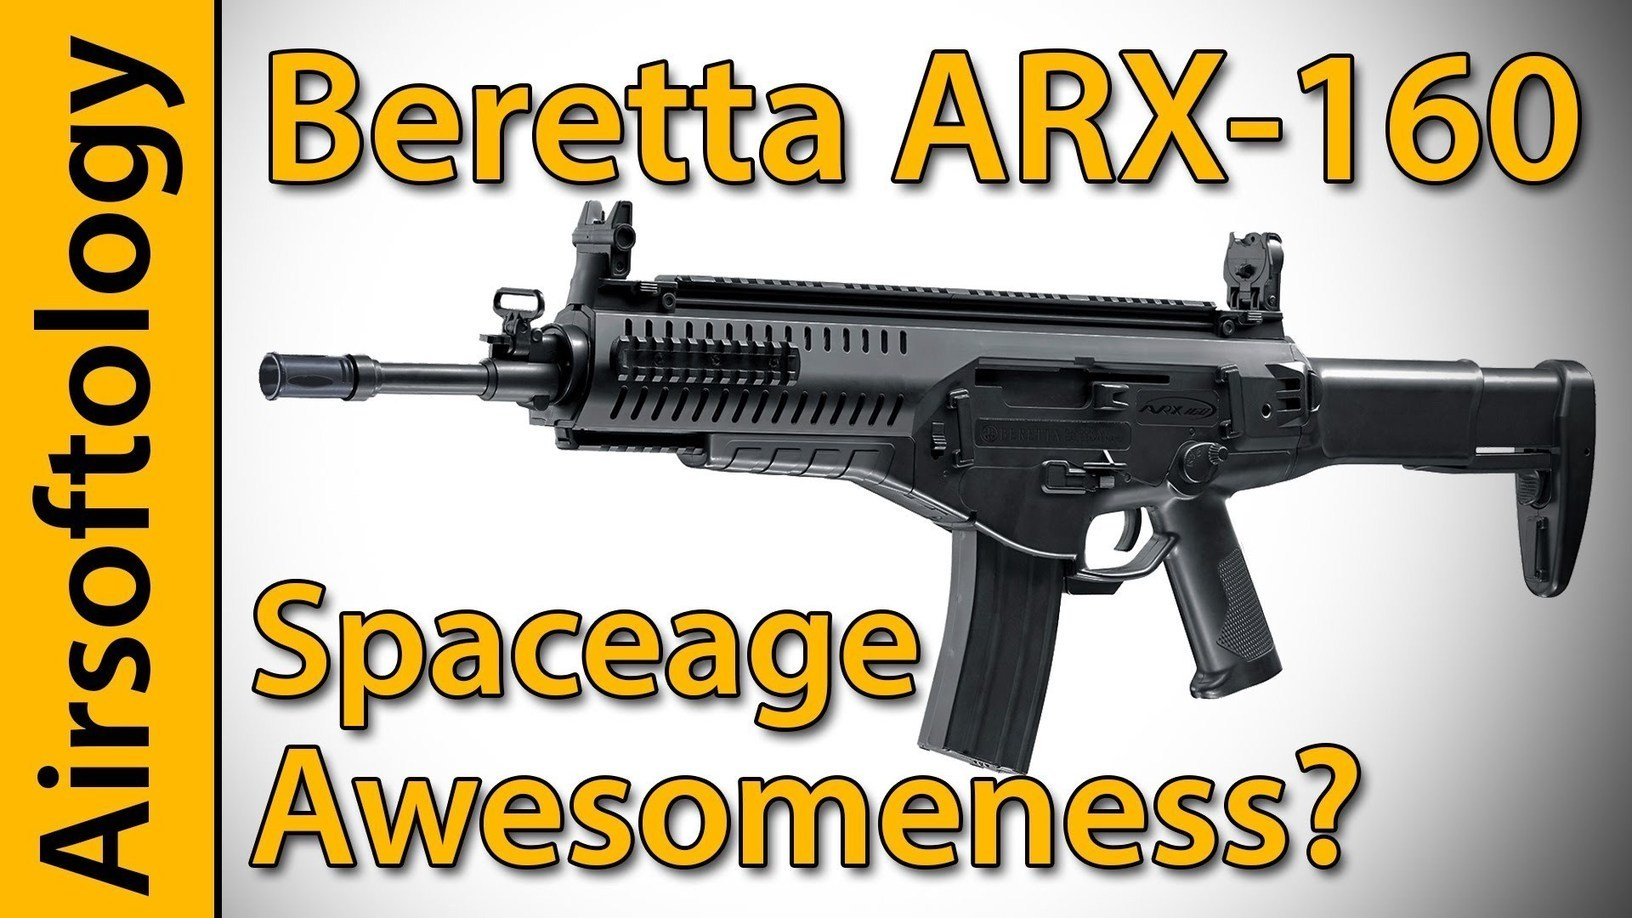 Space Age Shooter The Beretta Arx 160 Elit